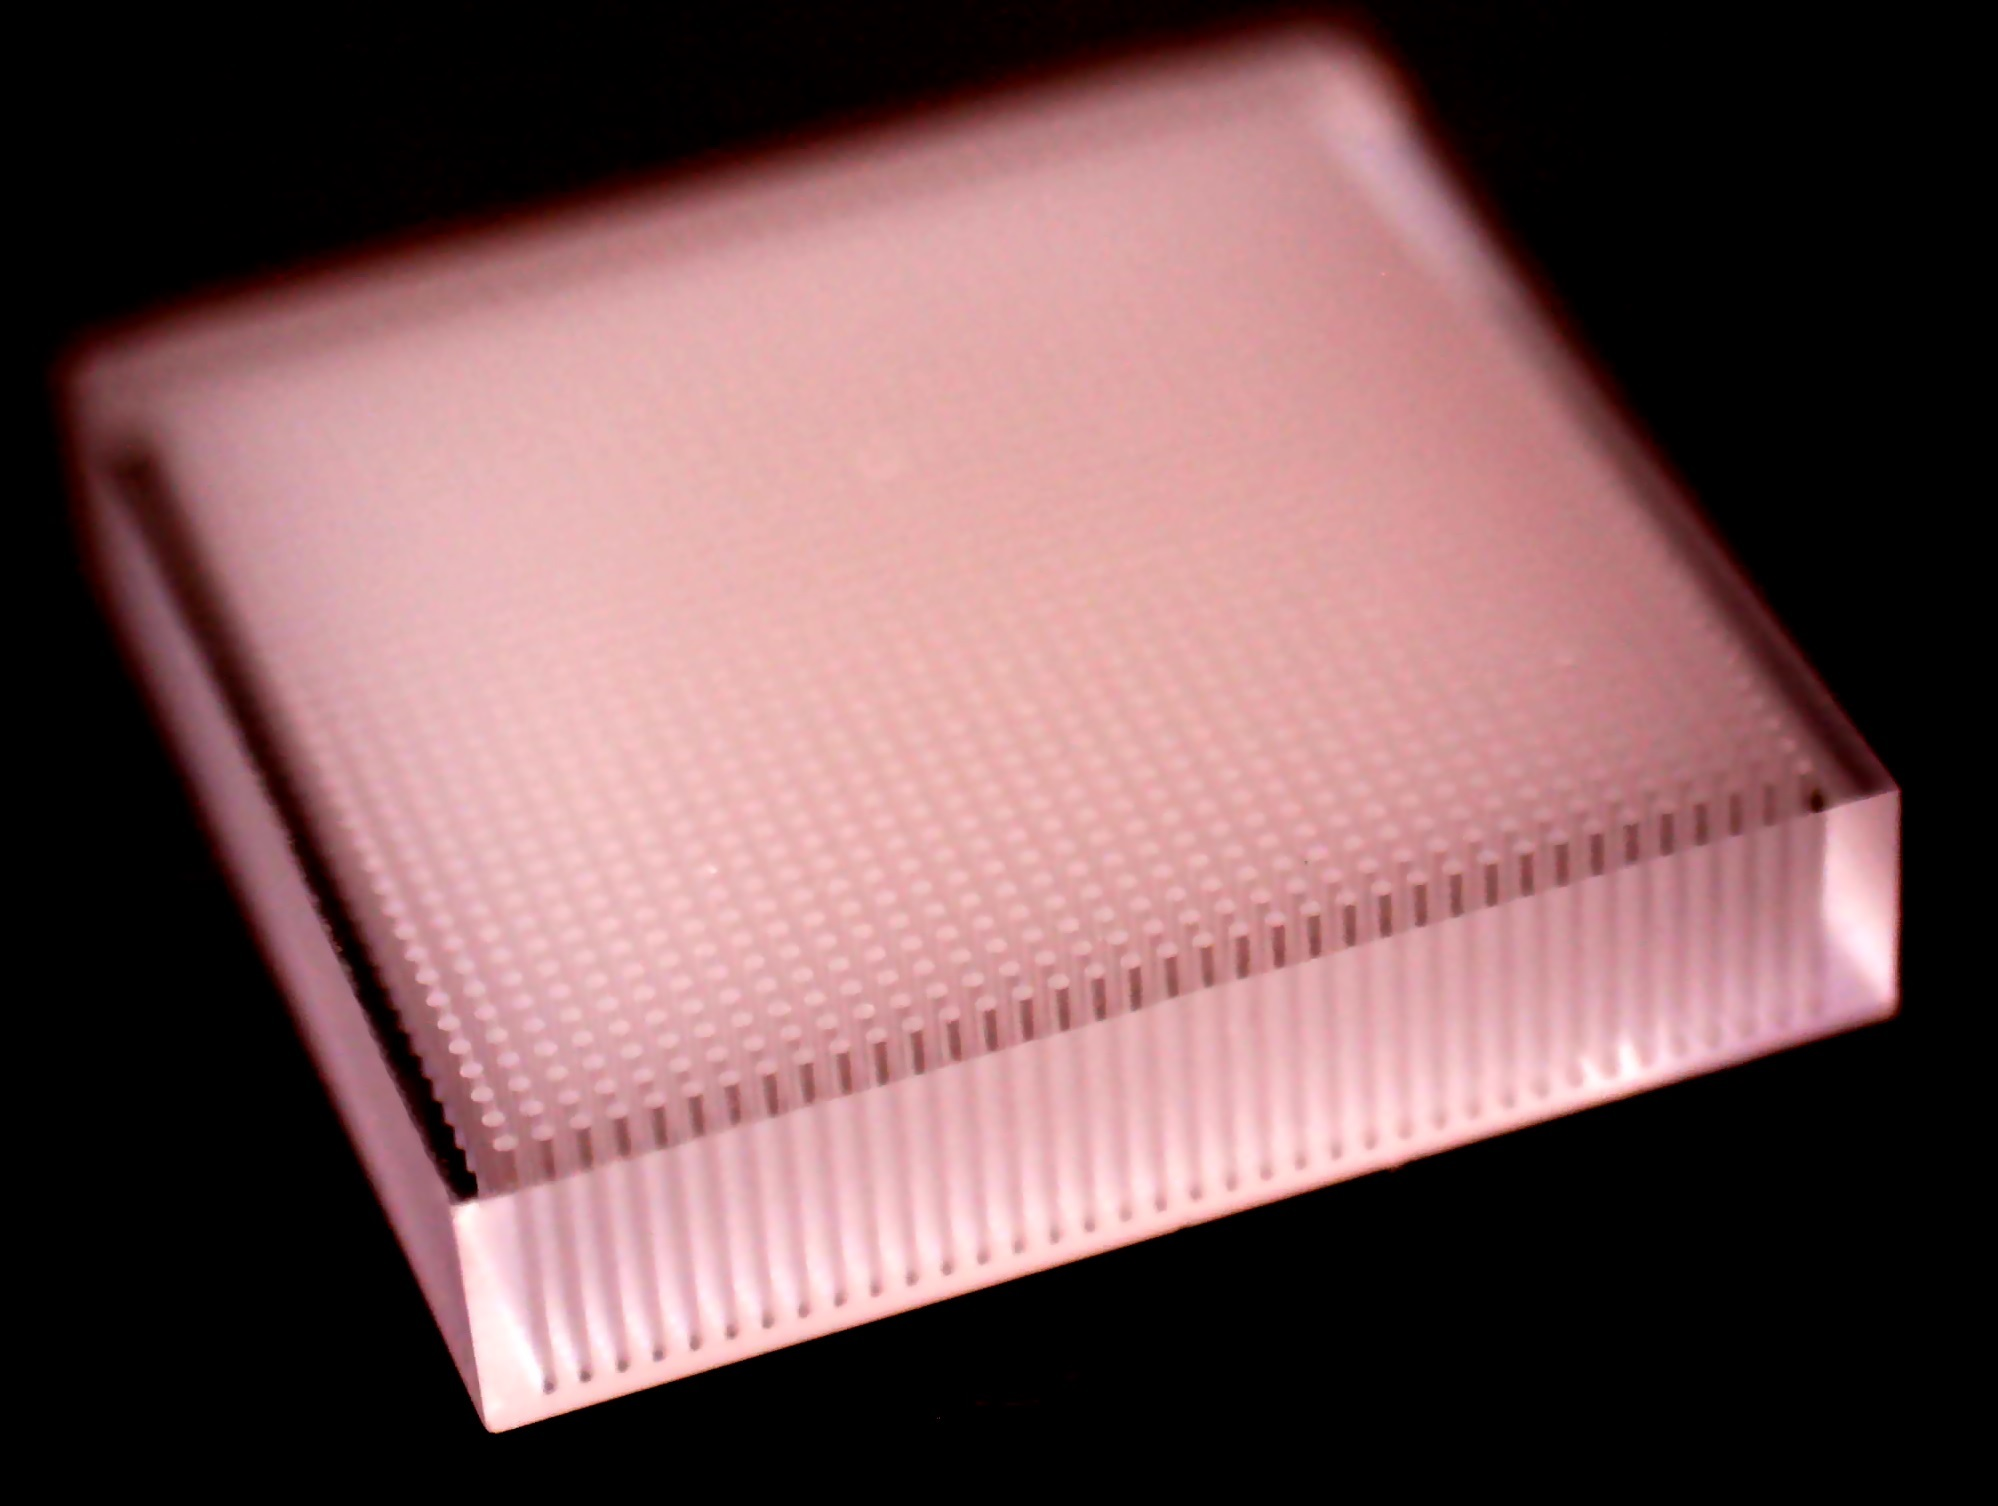 High density array in 2mm glass block